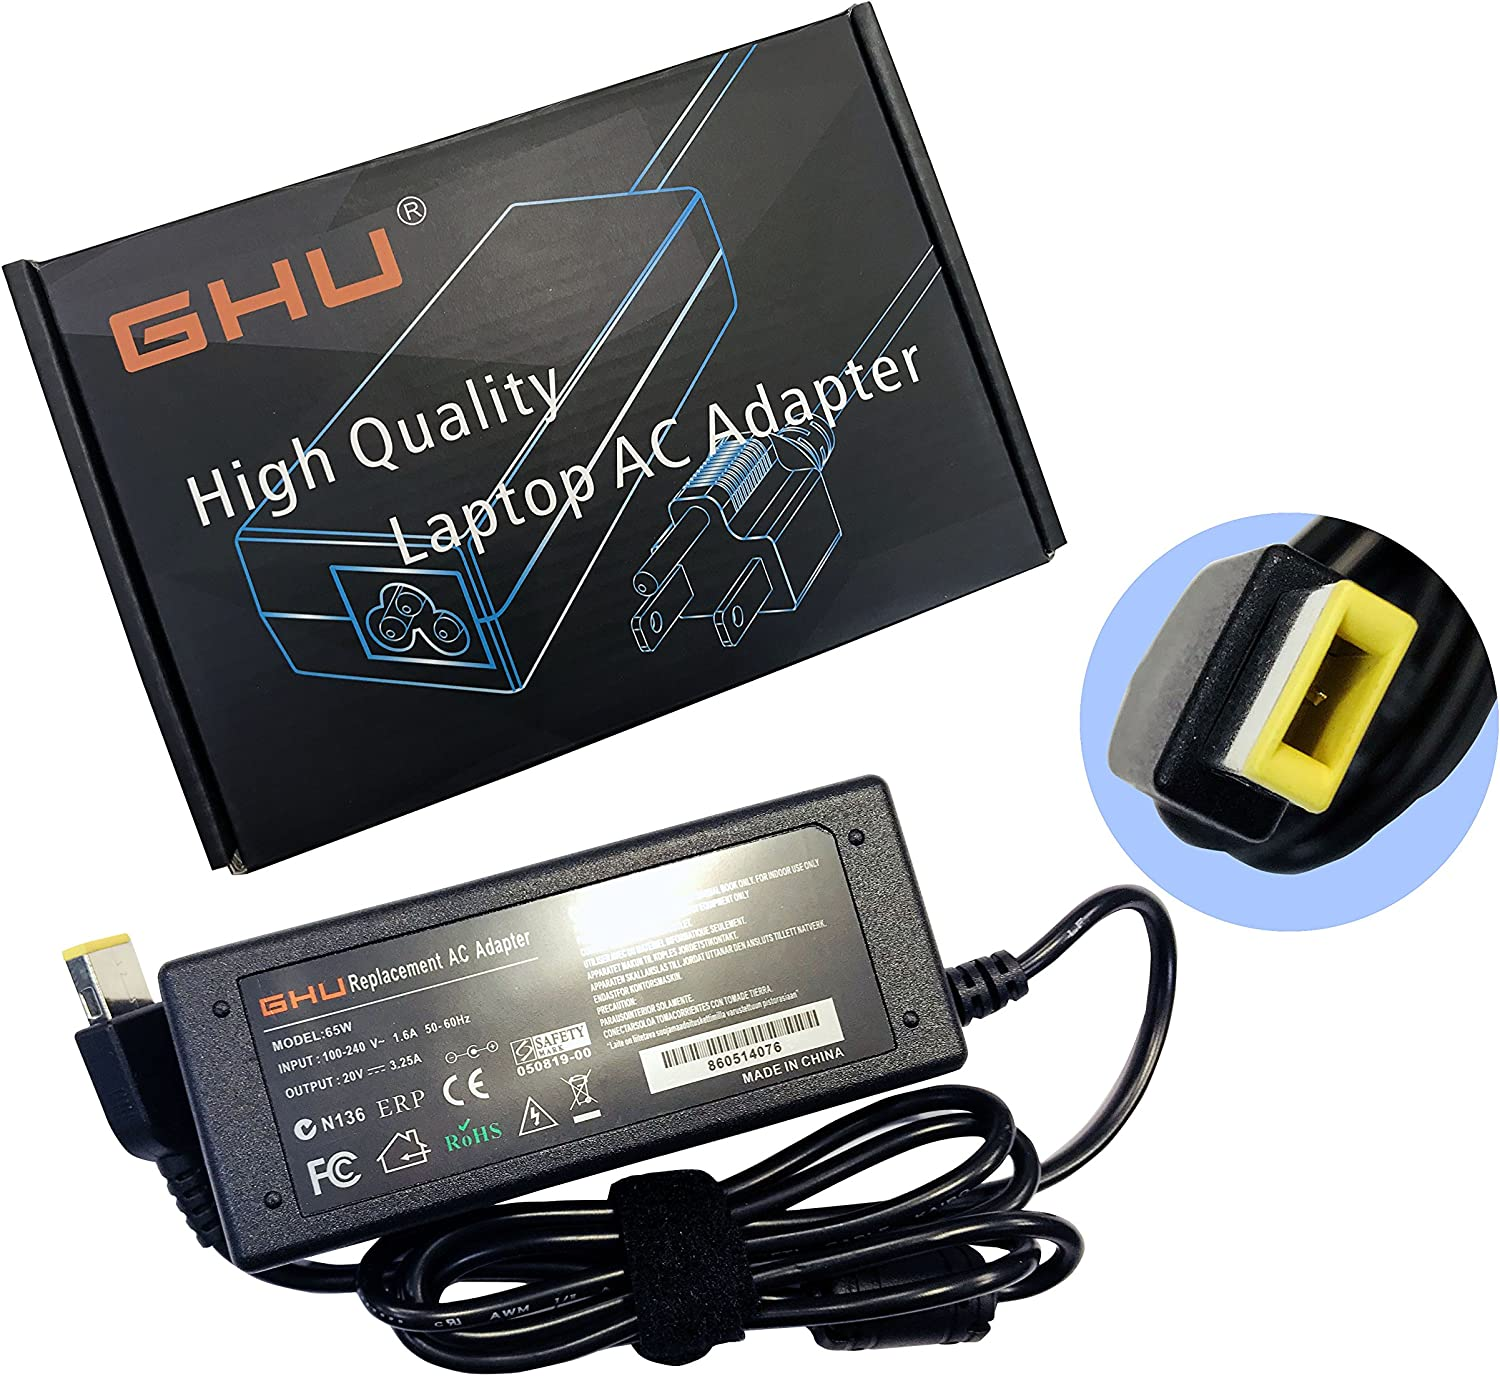 New GHU 65W AC Adapter Charger Compatible with Lenovo ThinkPad E431 E440 E450 E455 E460 E531 E540 E550 E555 E560 ThinkPad T450 T450s T470 T460 T570 W550s Y700 X1 Carbon Lenovo B50 G40 G50 G51 G70 N20p